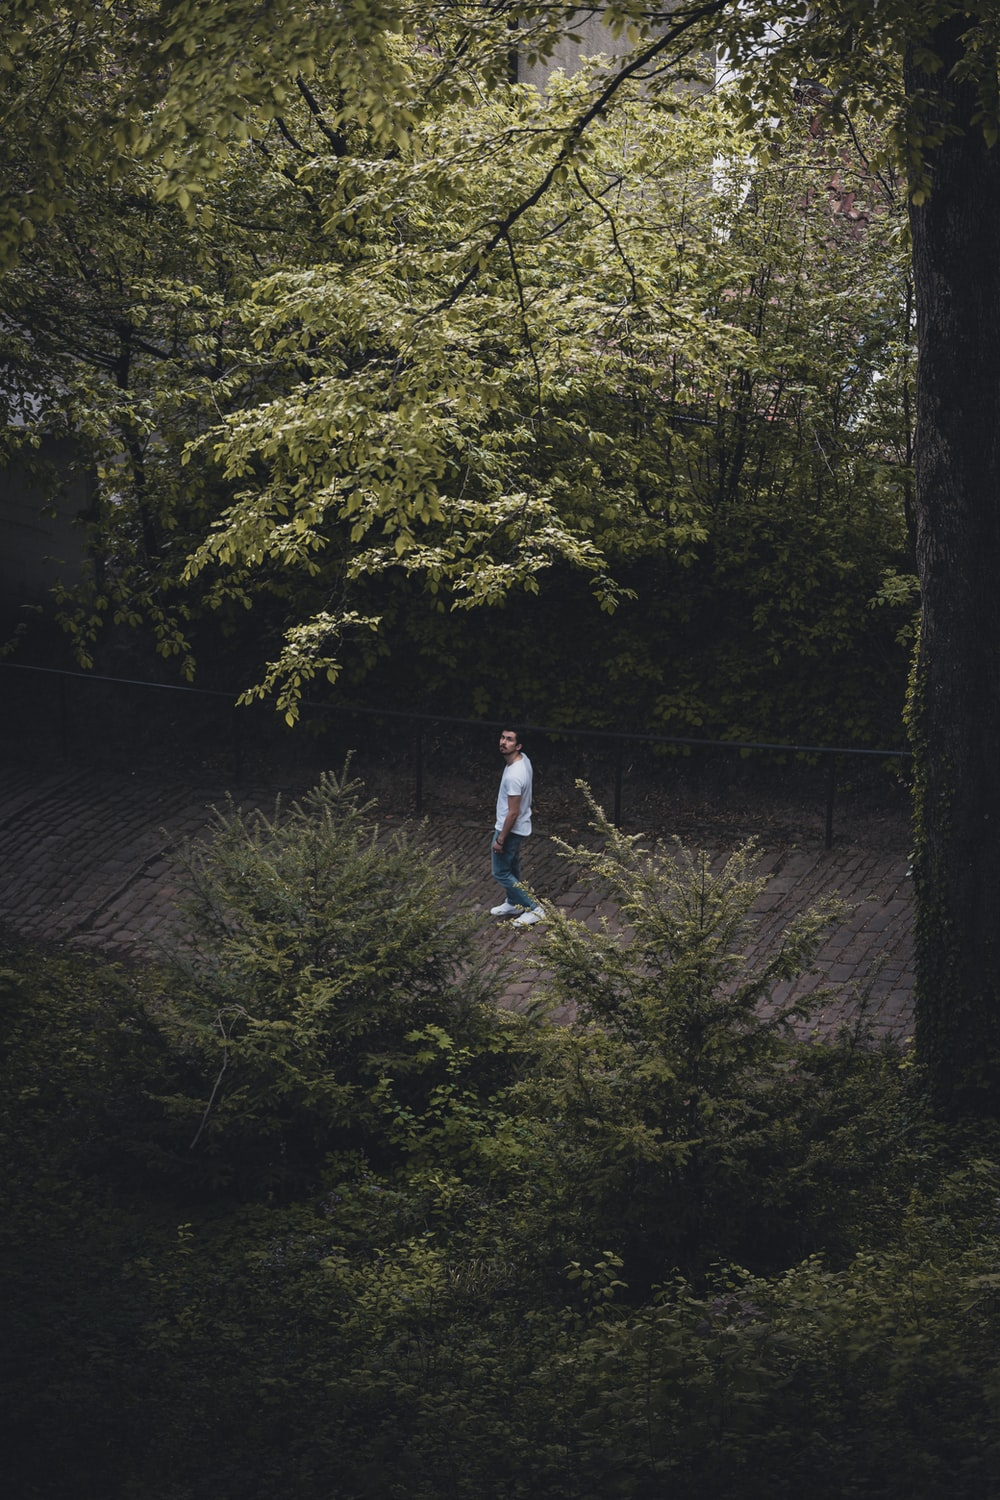 man in white t-shirt and blue denim jeans walking on pathway between green trees during